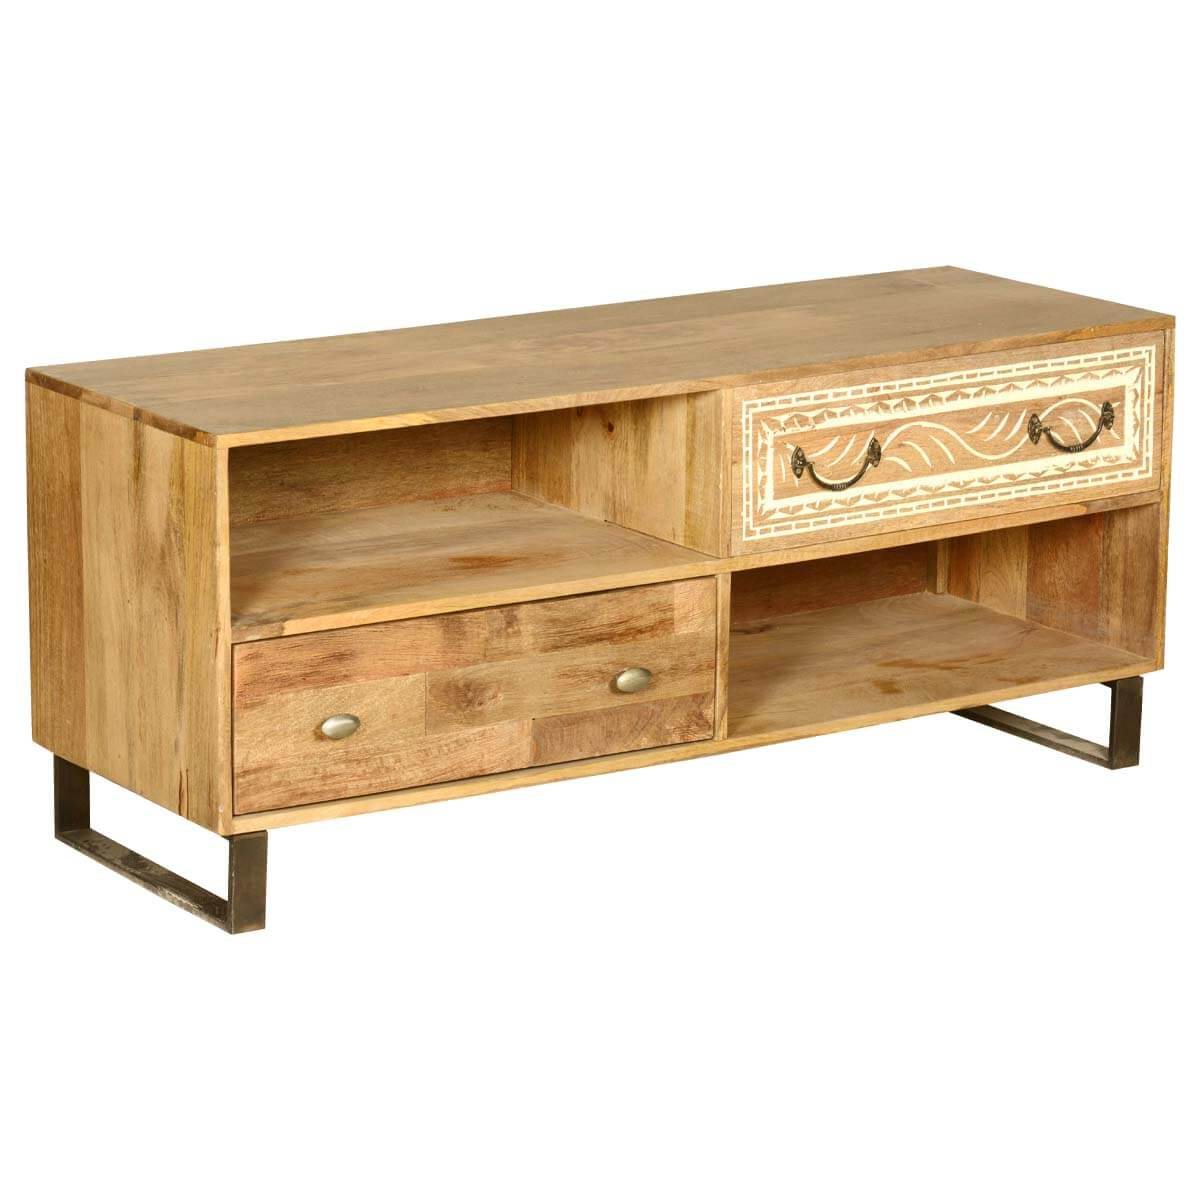 Modern rustic solid wood entertainment center tv stand w 2 Rustic tv stands